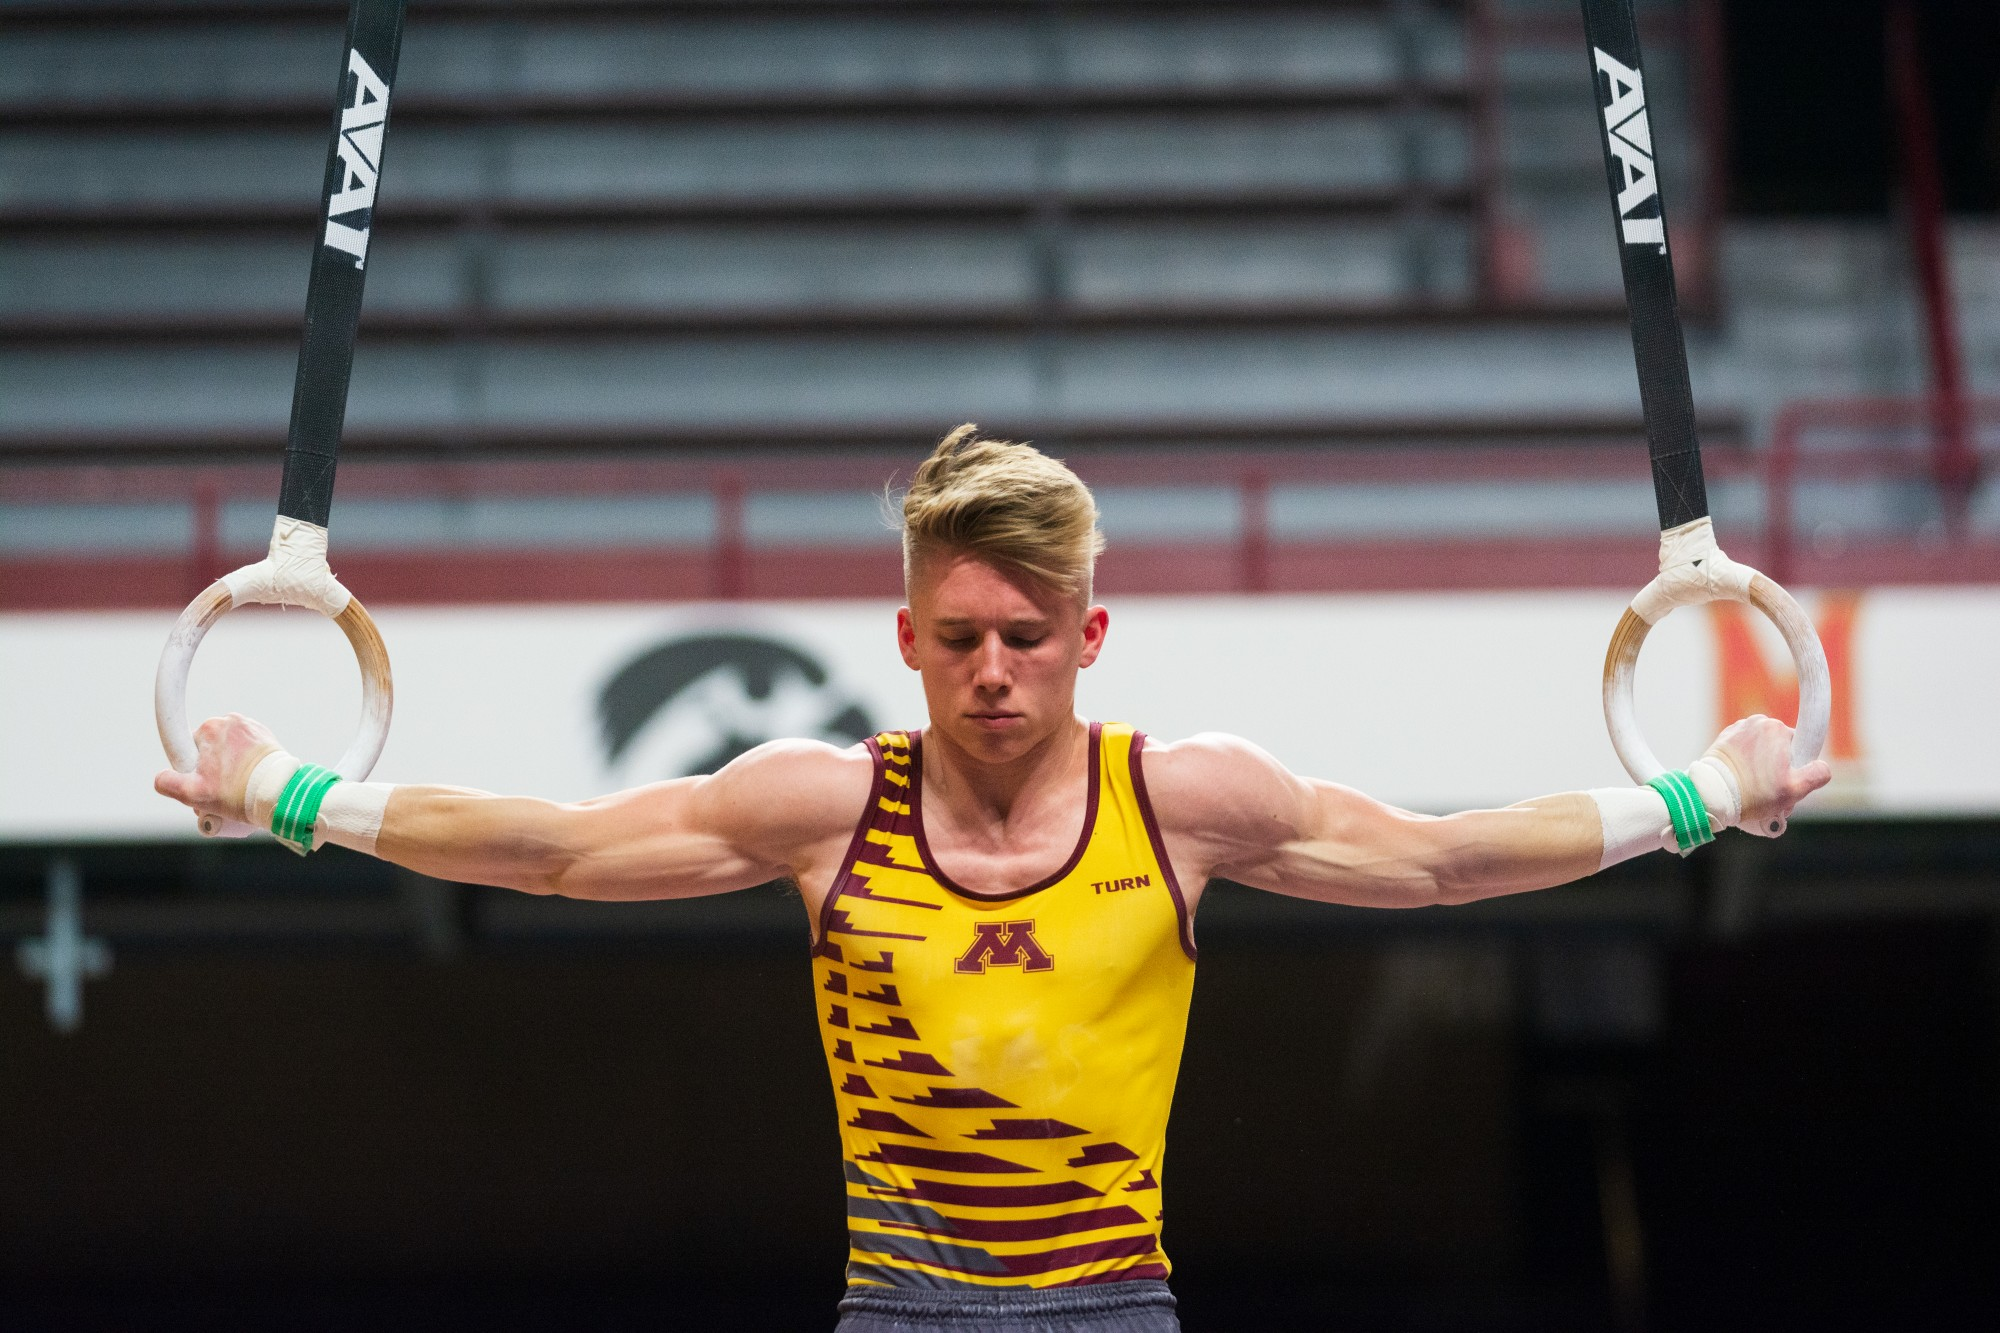 Gophers Junior Shane Wiskus performs a routine on the still rings at Maturi Pavilion on Friday, Feb. 7. The Gophers went on to a 398-375.55 victory over the Washington Huskies.